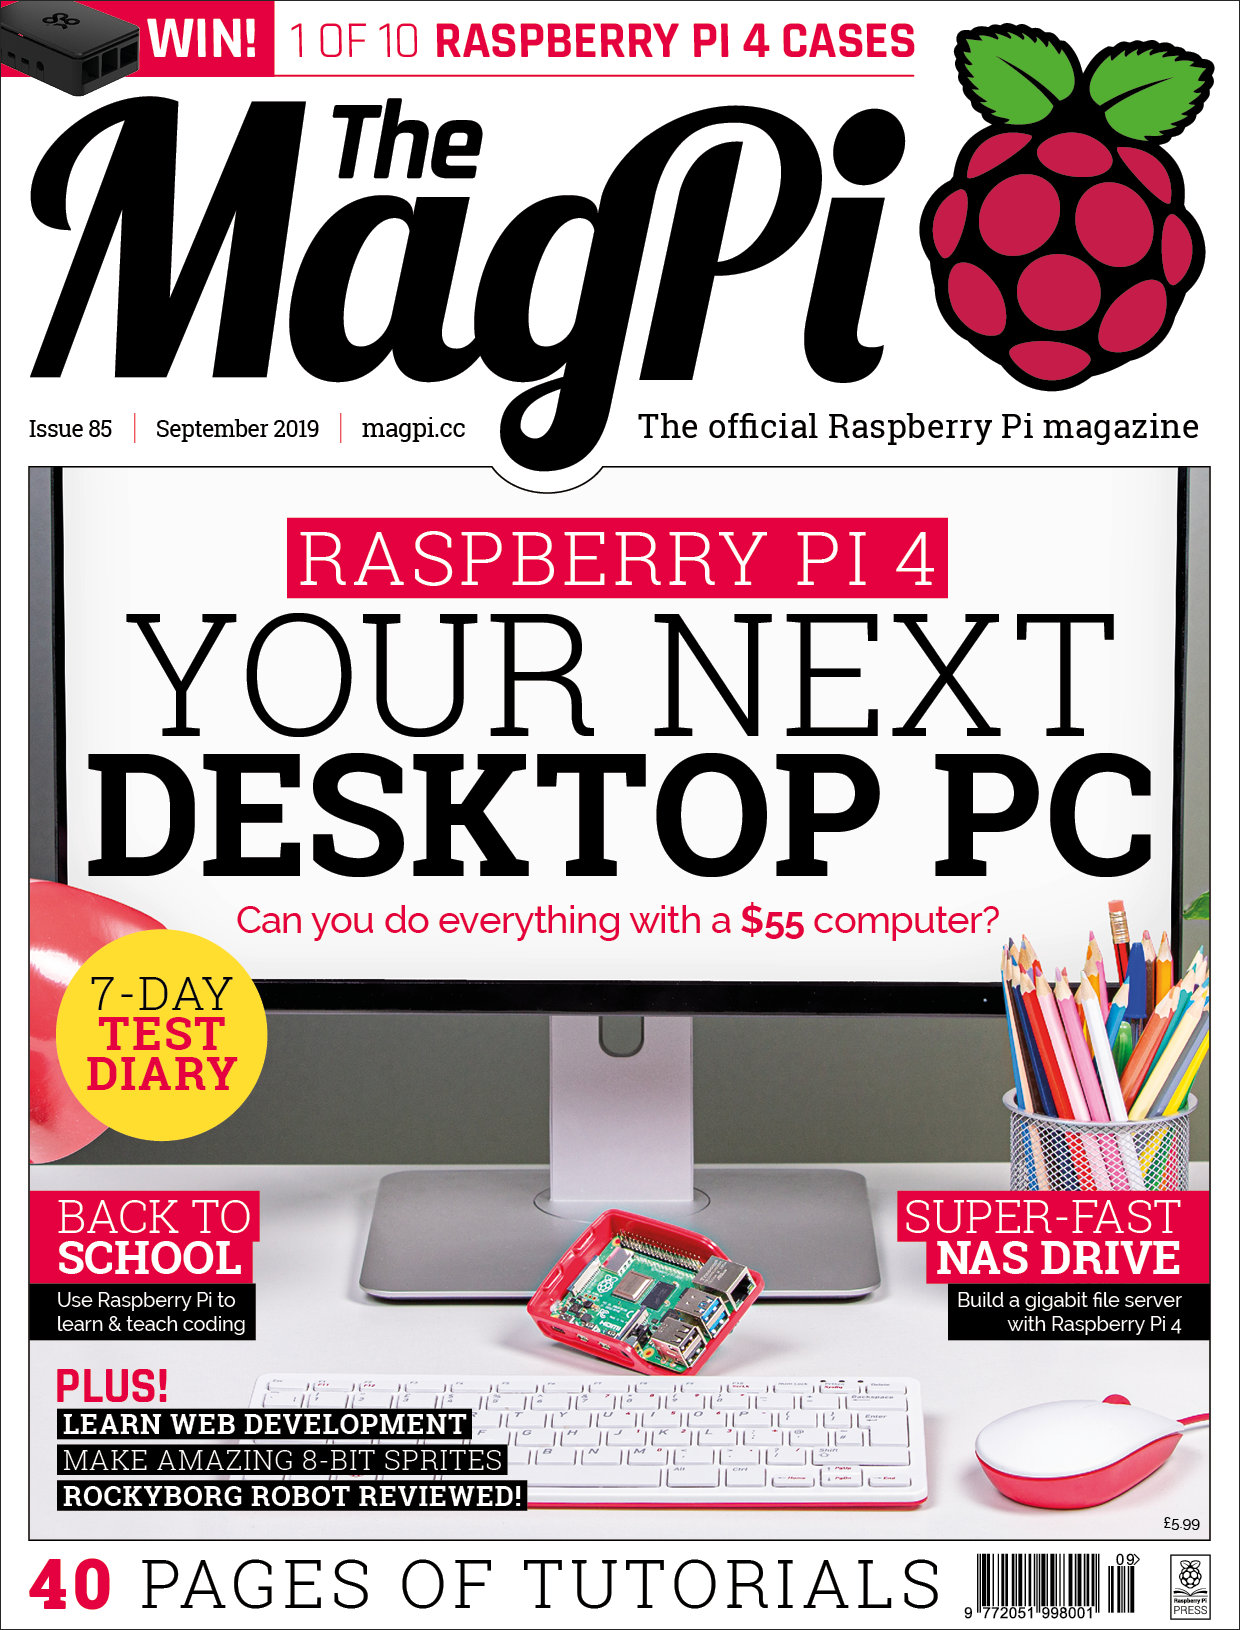 Running Android on a Raspberry Pi - The MagPi MagazineThe